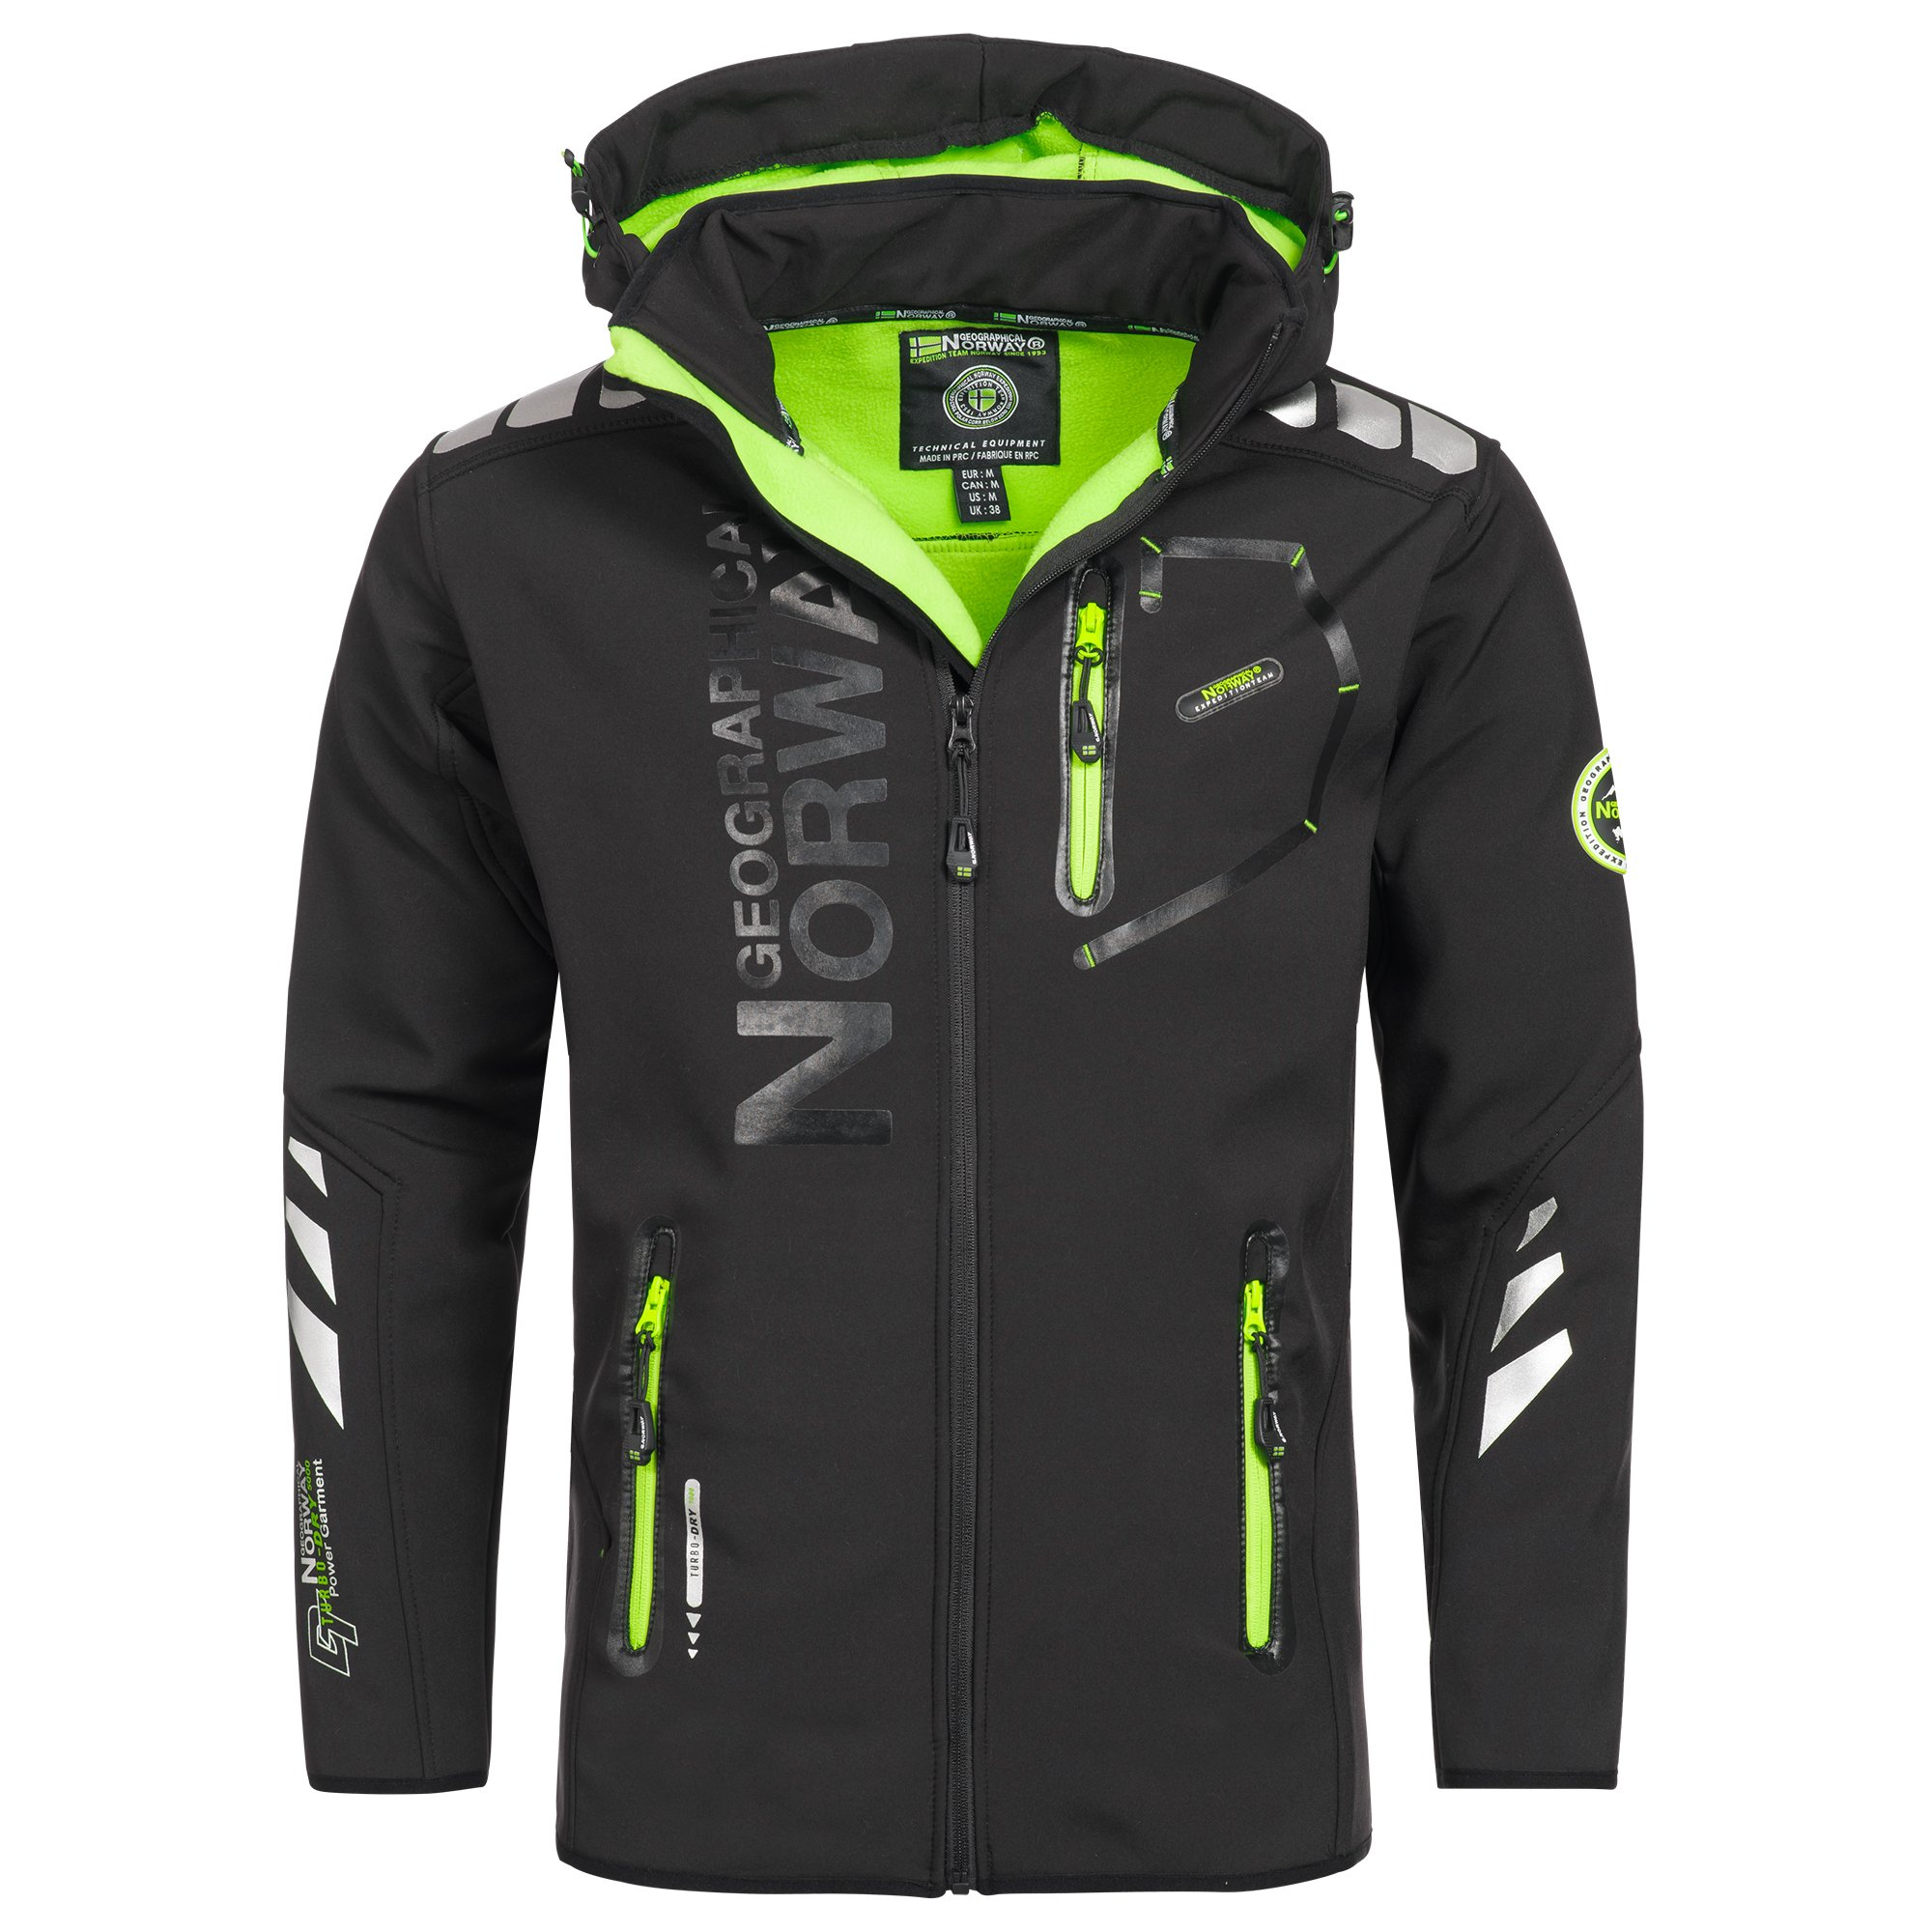 efc43b2a2d43 Geographical Norway Vantaa Herren Softshell Jacke Outdoor Funktionsjacke  product image